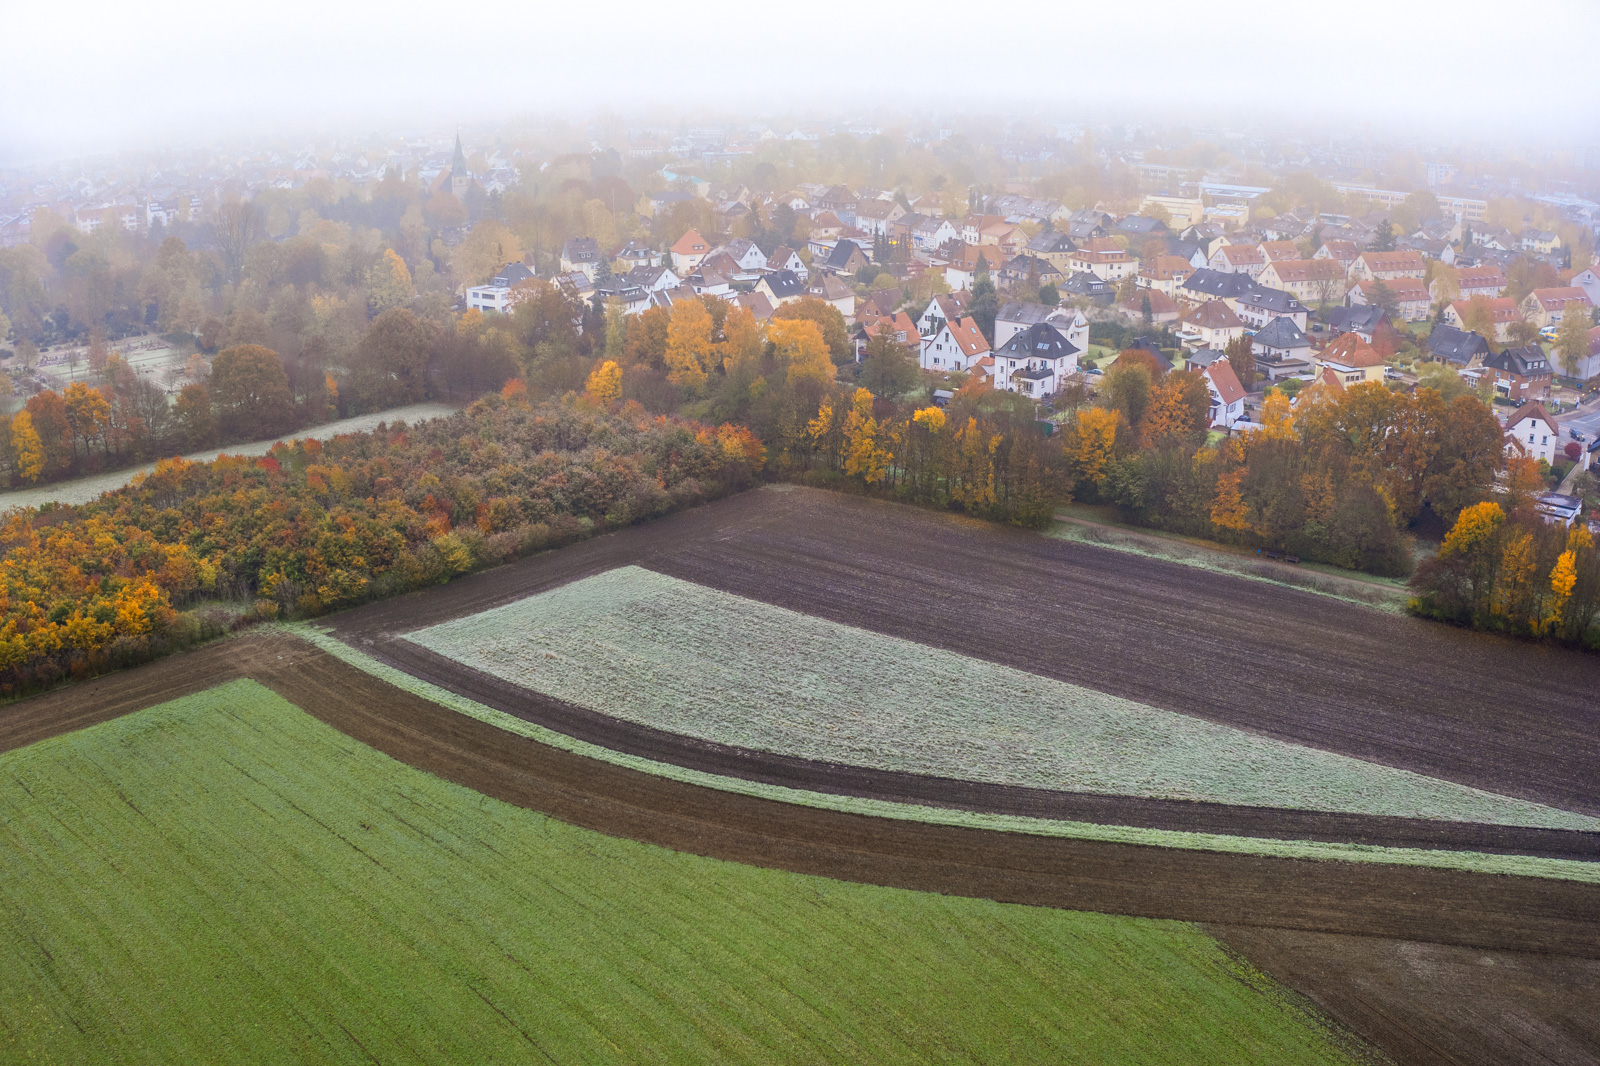 Agricultural Geometry. Fields near Bielefeld-Heepen (Germany).